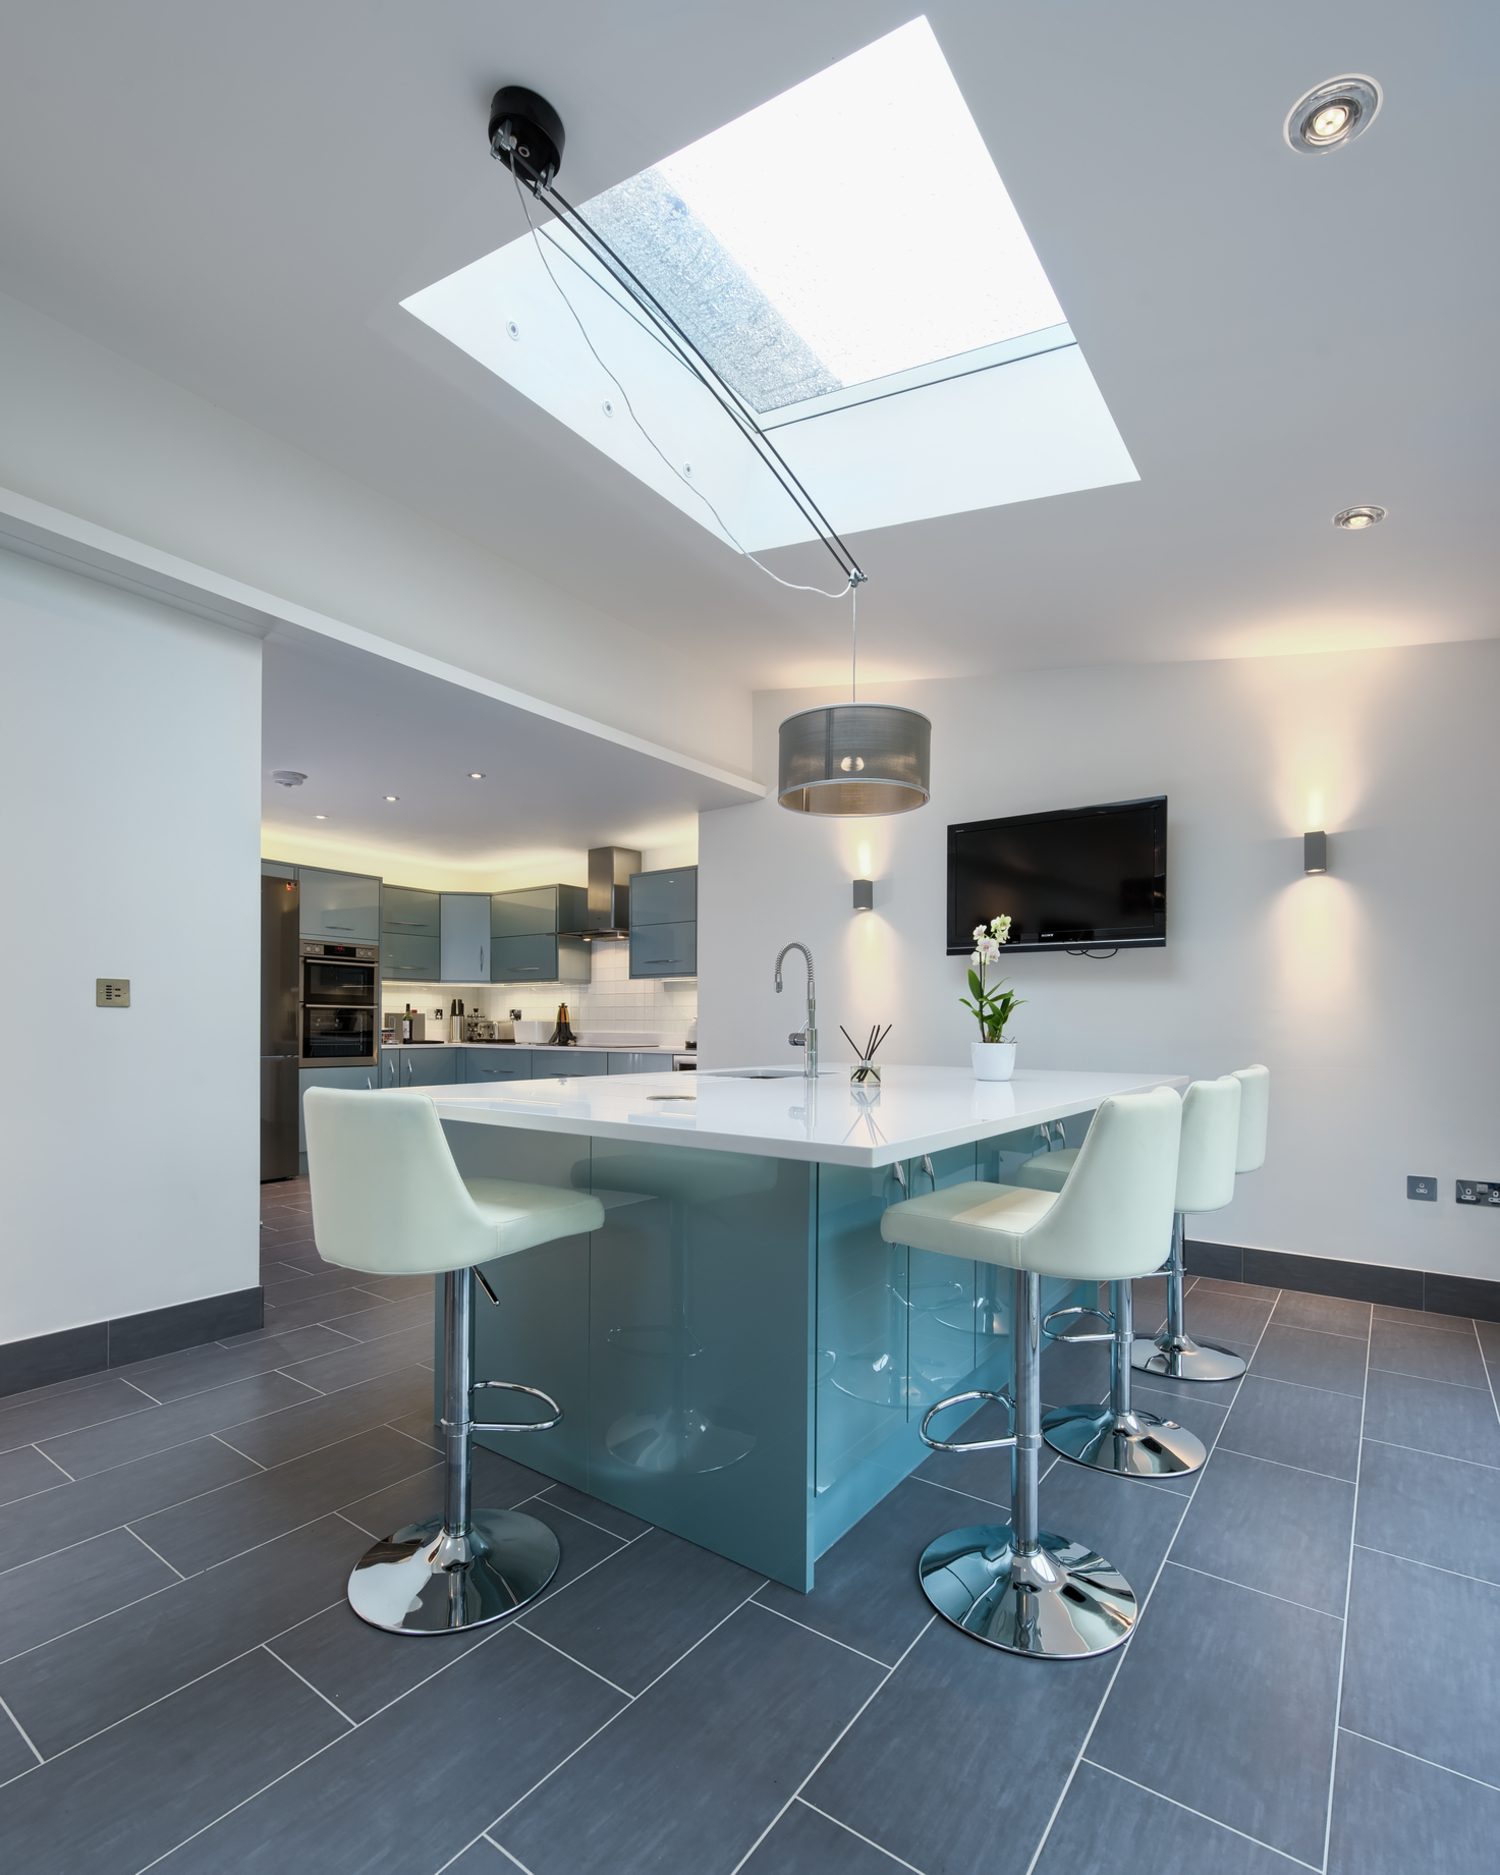 Skylight of a lighting house extension by Harvey Norman Architects Cambridge